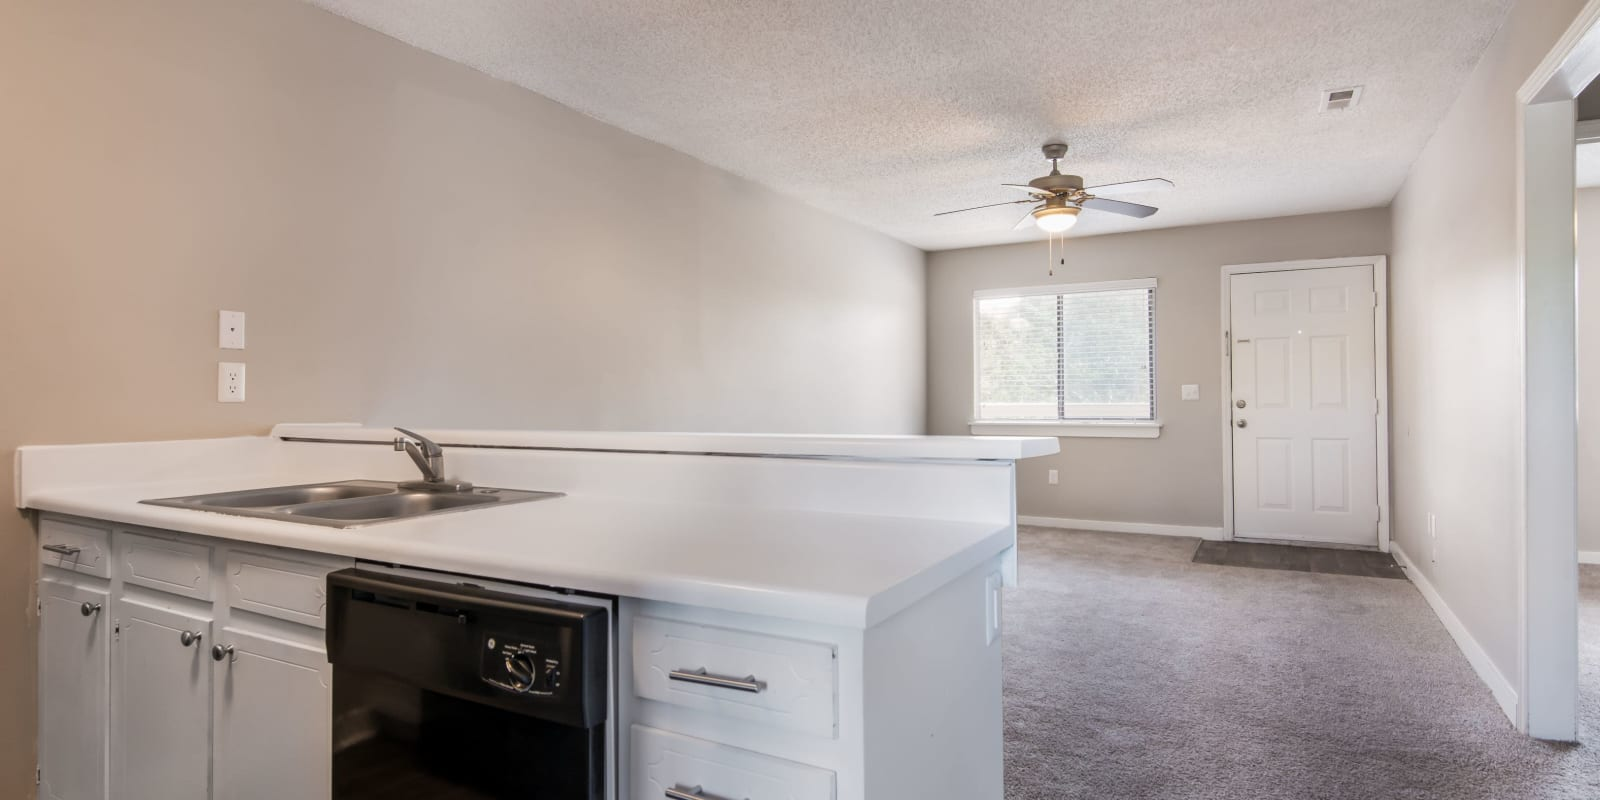 Kitchen overlooking the living room with plush carpeting at 1022 West Apartment Homes in Gaffney, South Carolina